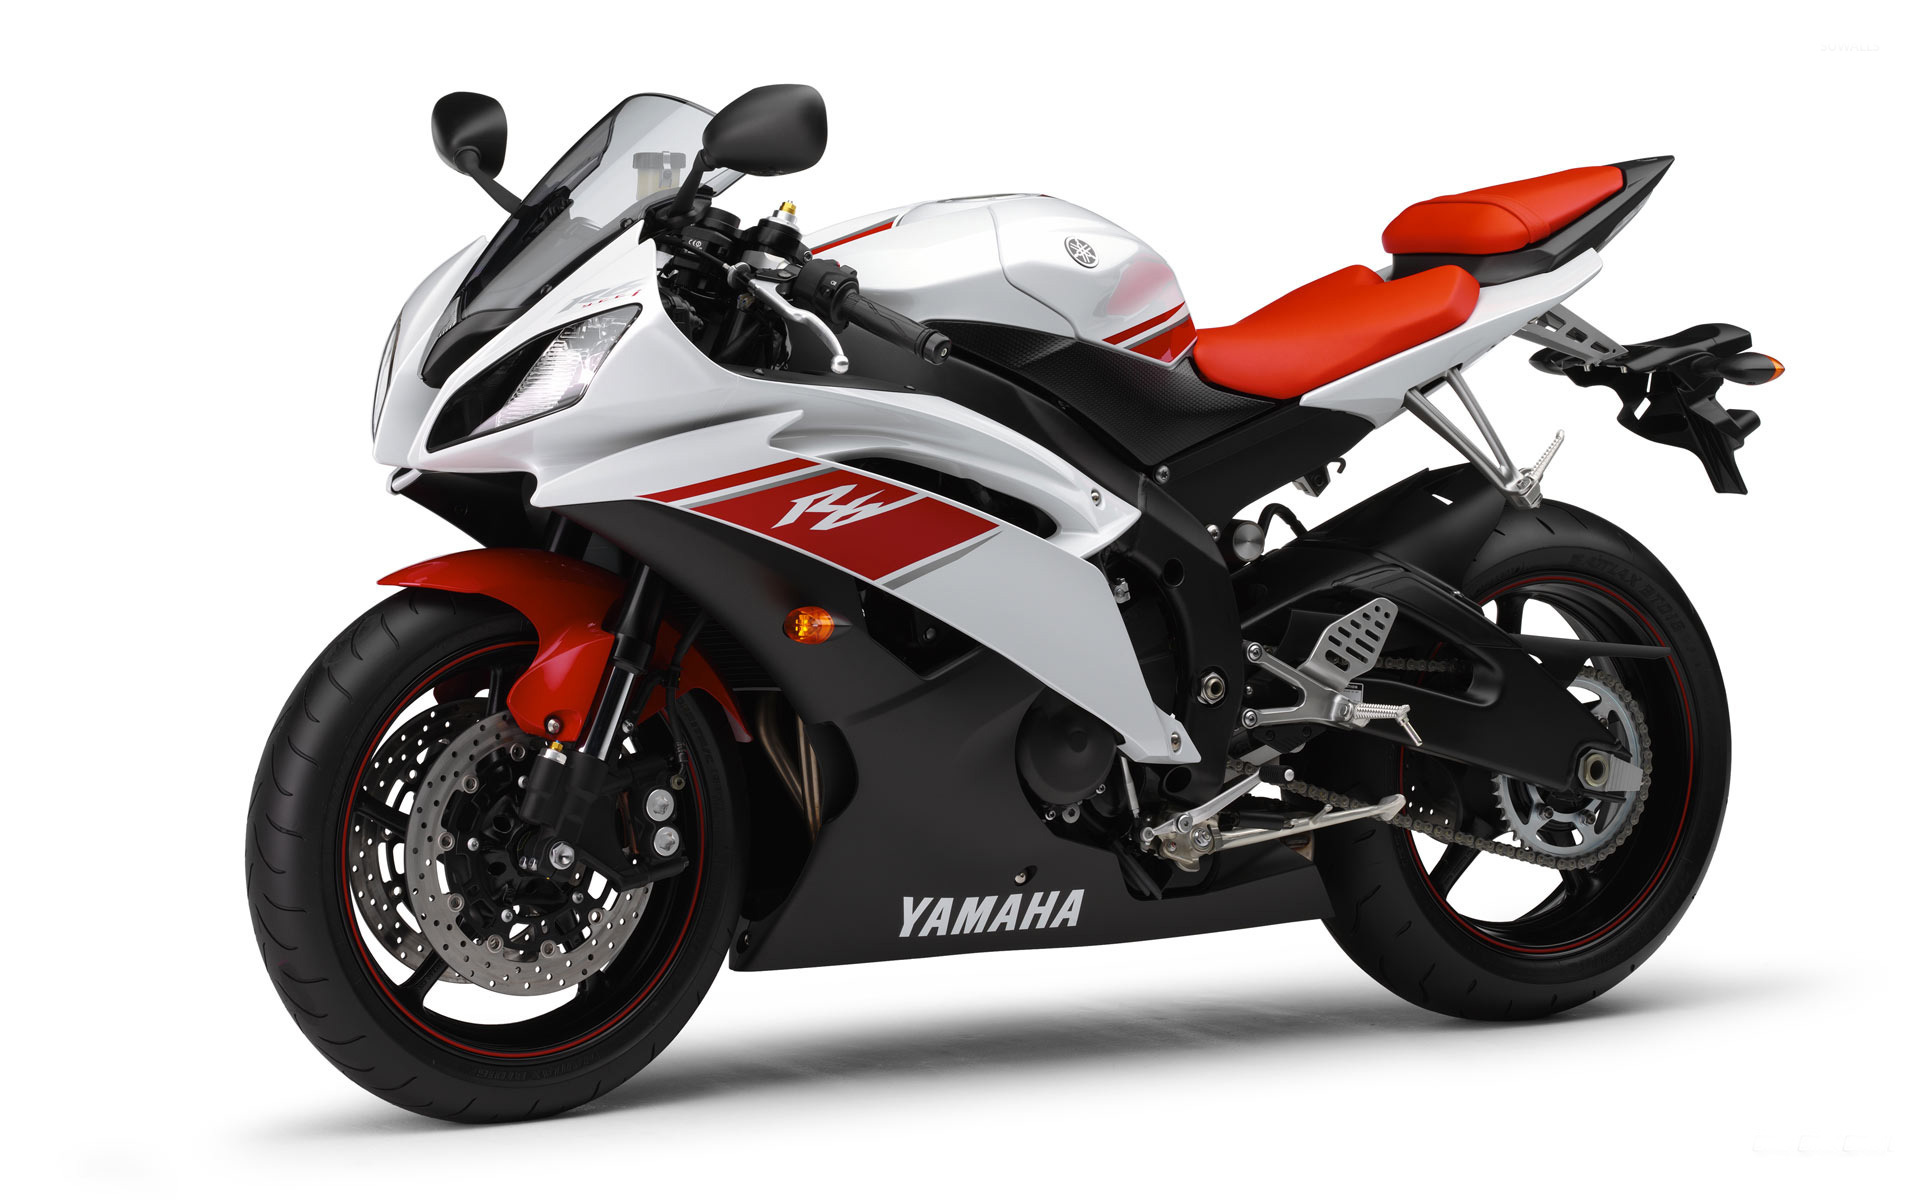 Amazing Yamaha Yzf R6 Pictures & Backgrounds